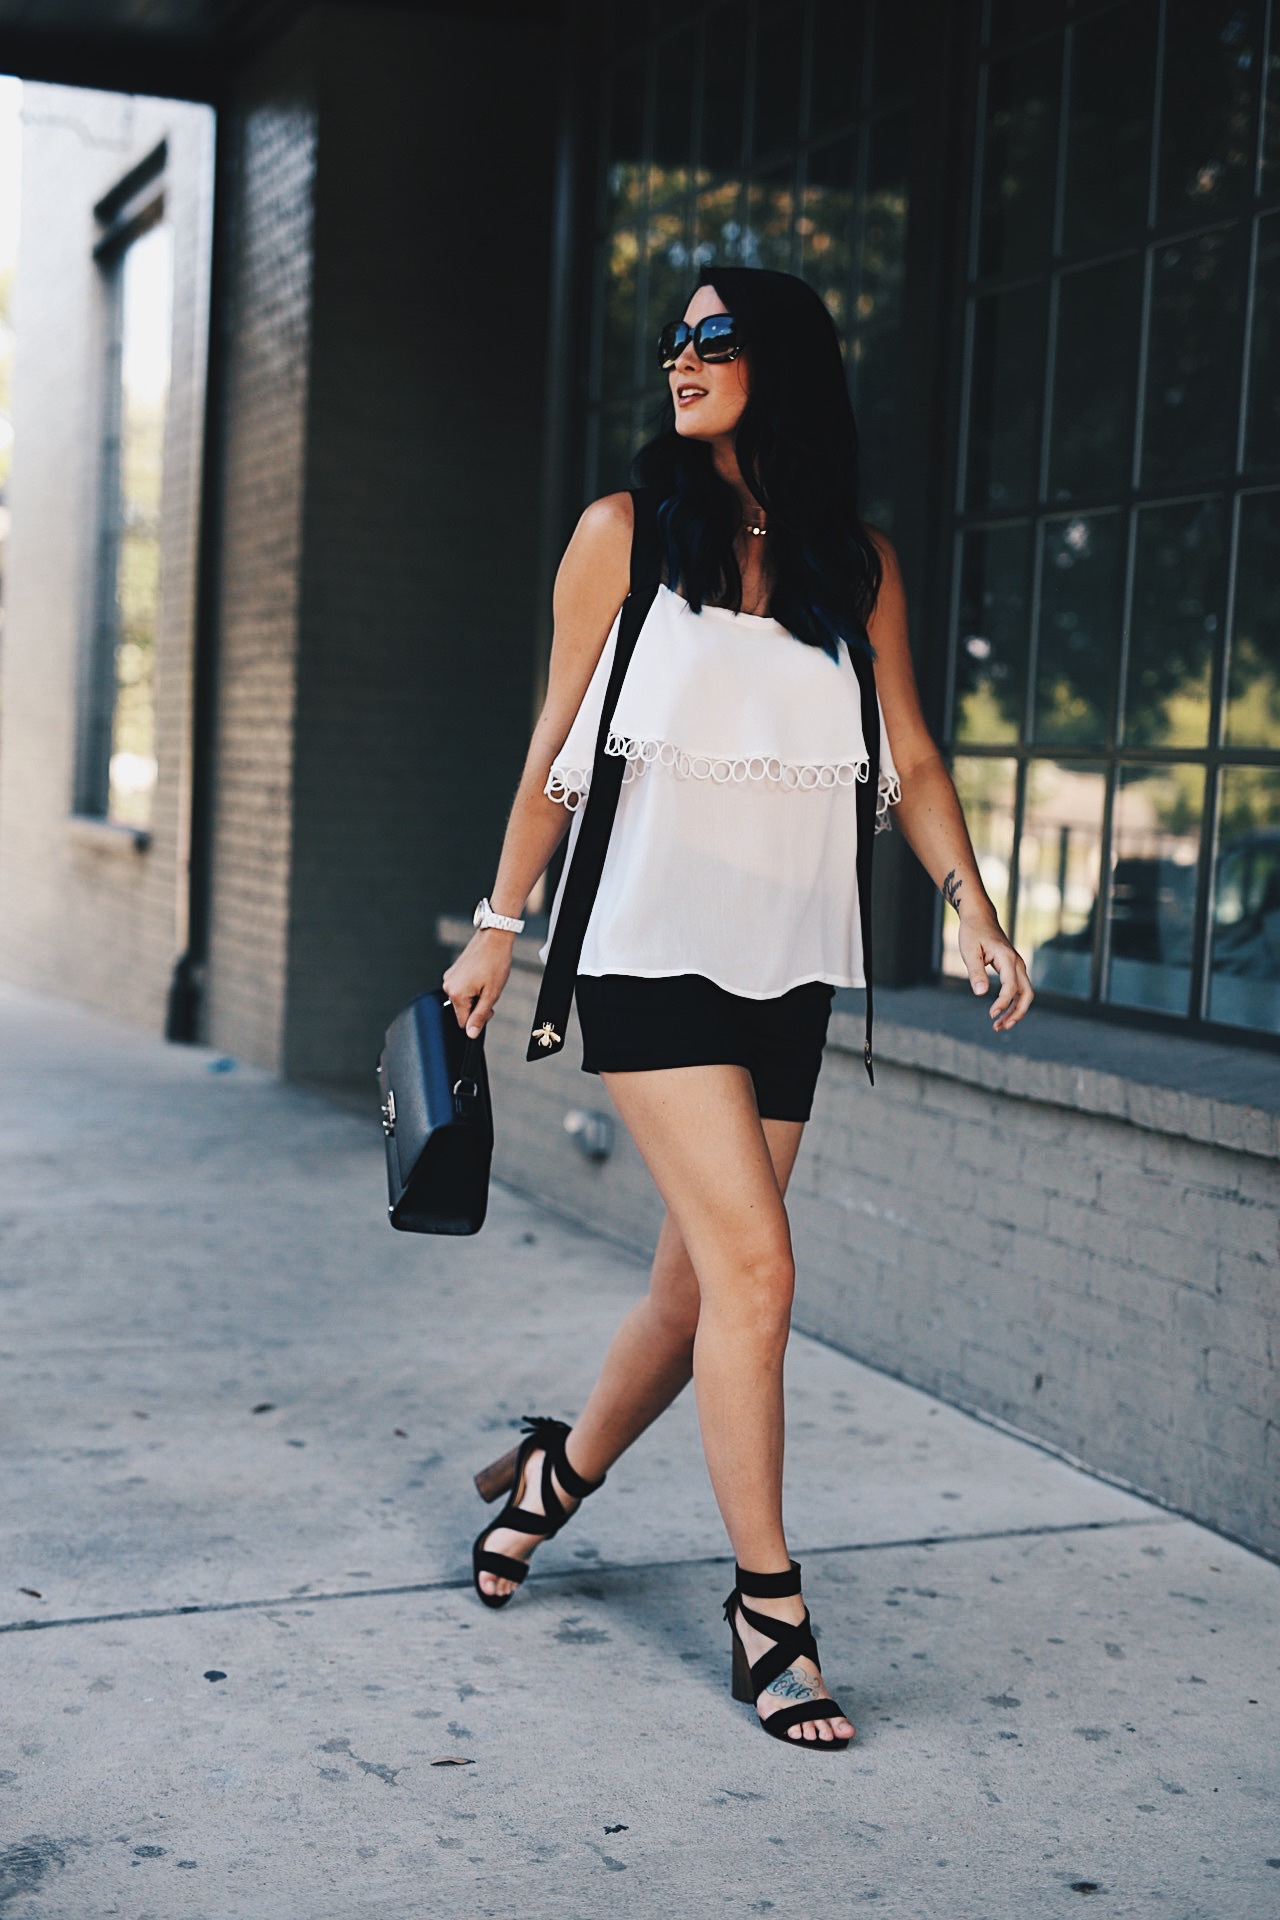 DTKAustin shares her love for black and white with this bee detailed top from Chicwish. Shoes from Splendid, Shorts from Alice & Olivia and bag from Henri Bendel. Click for more details and photos.  | how to style a cold shoulder top | how to wear a cold shoulder top | cold shoulder top style tips | summer fashion tips | summer outfit ideas | summer style tips | what to wear for summer | warm weather fashion | fashion for summer | style tips for summer | outfit ideas for summer || Dressed to Kill